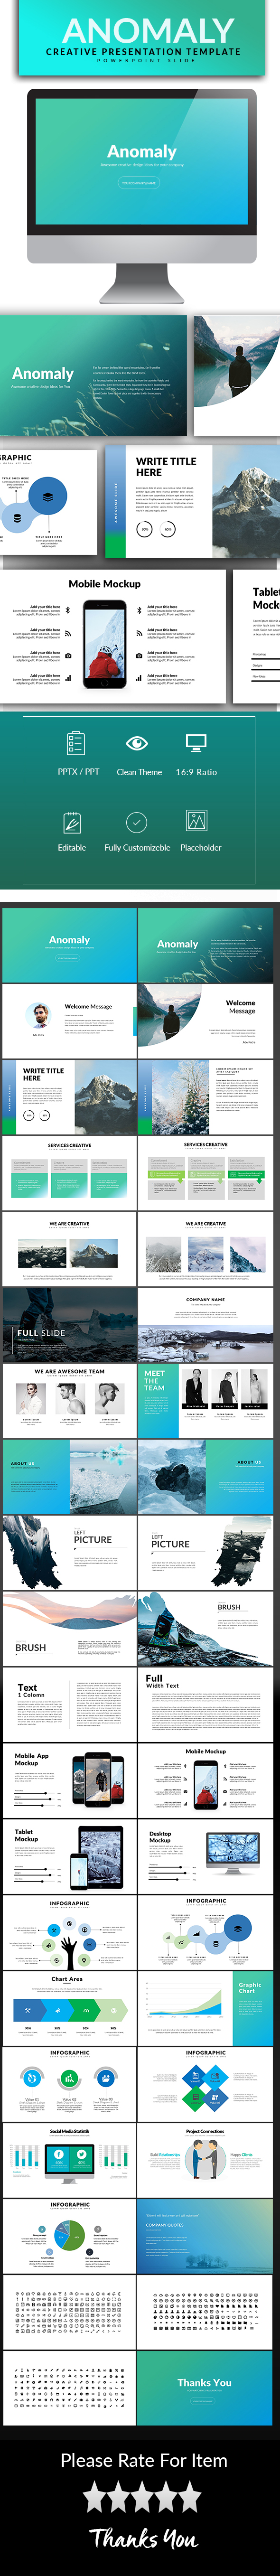 Anomaly Powerpoint Template - PowerPoint Templates Presentation Templates